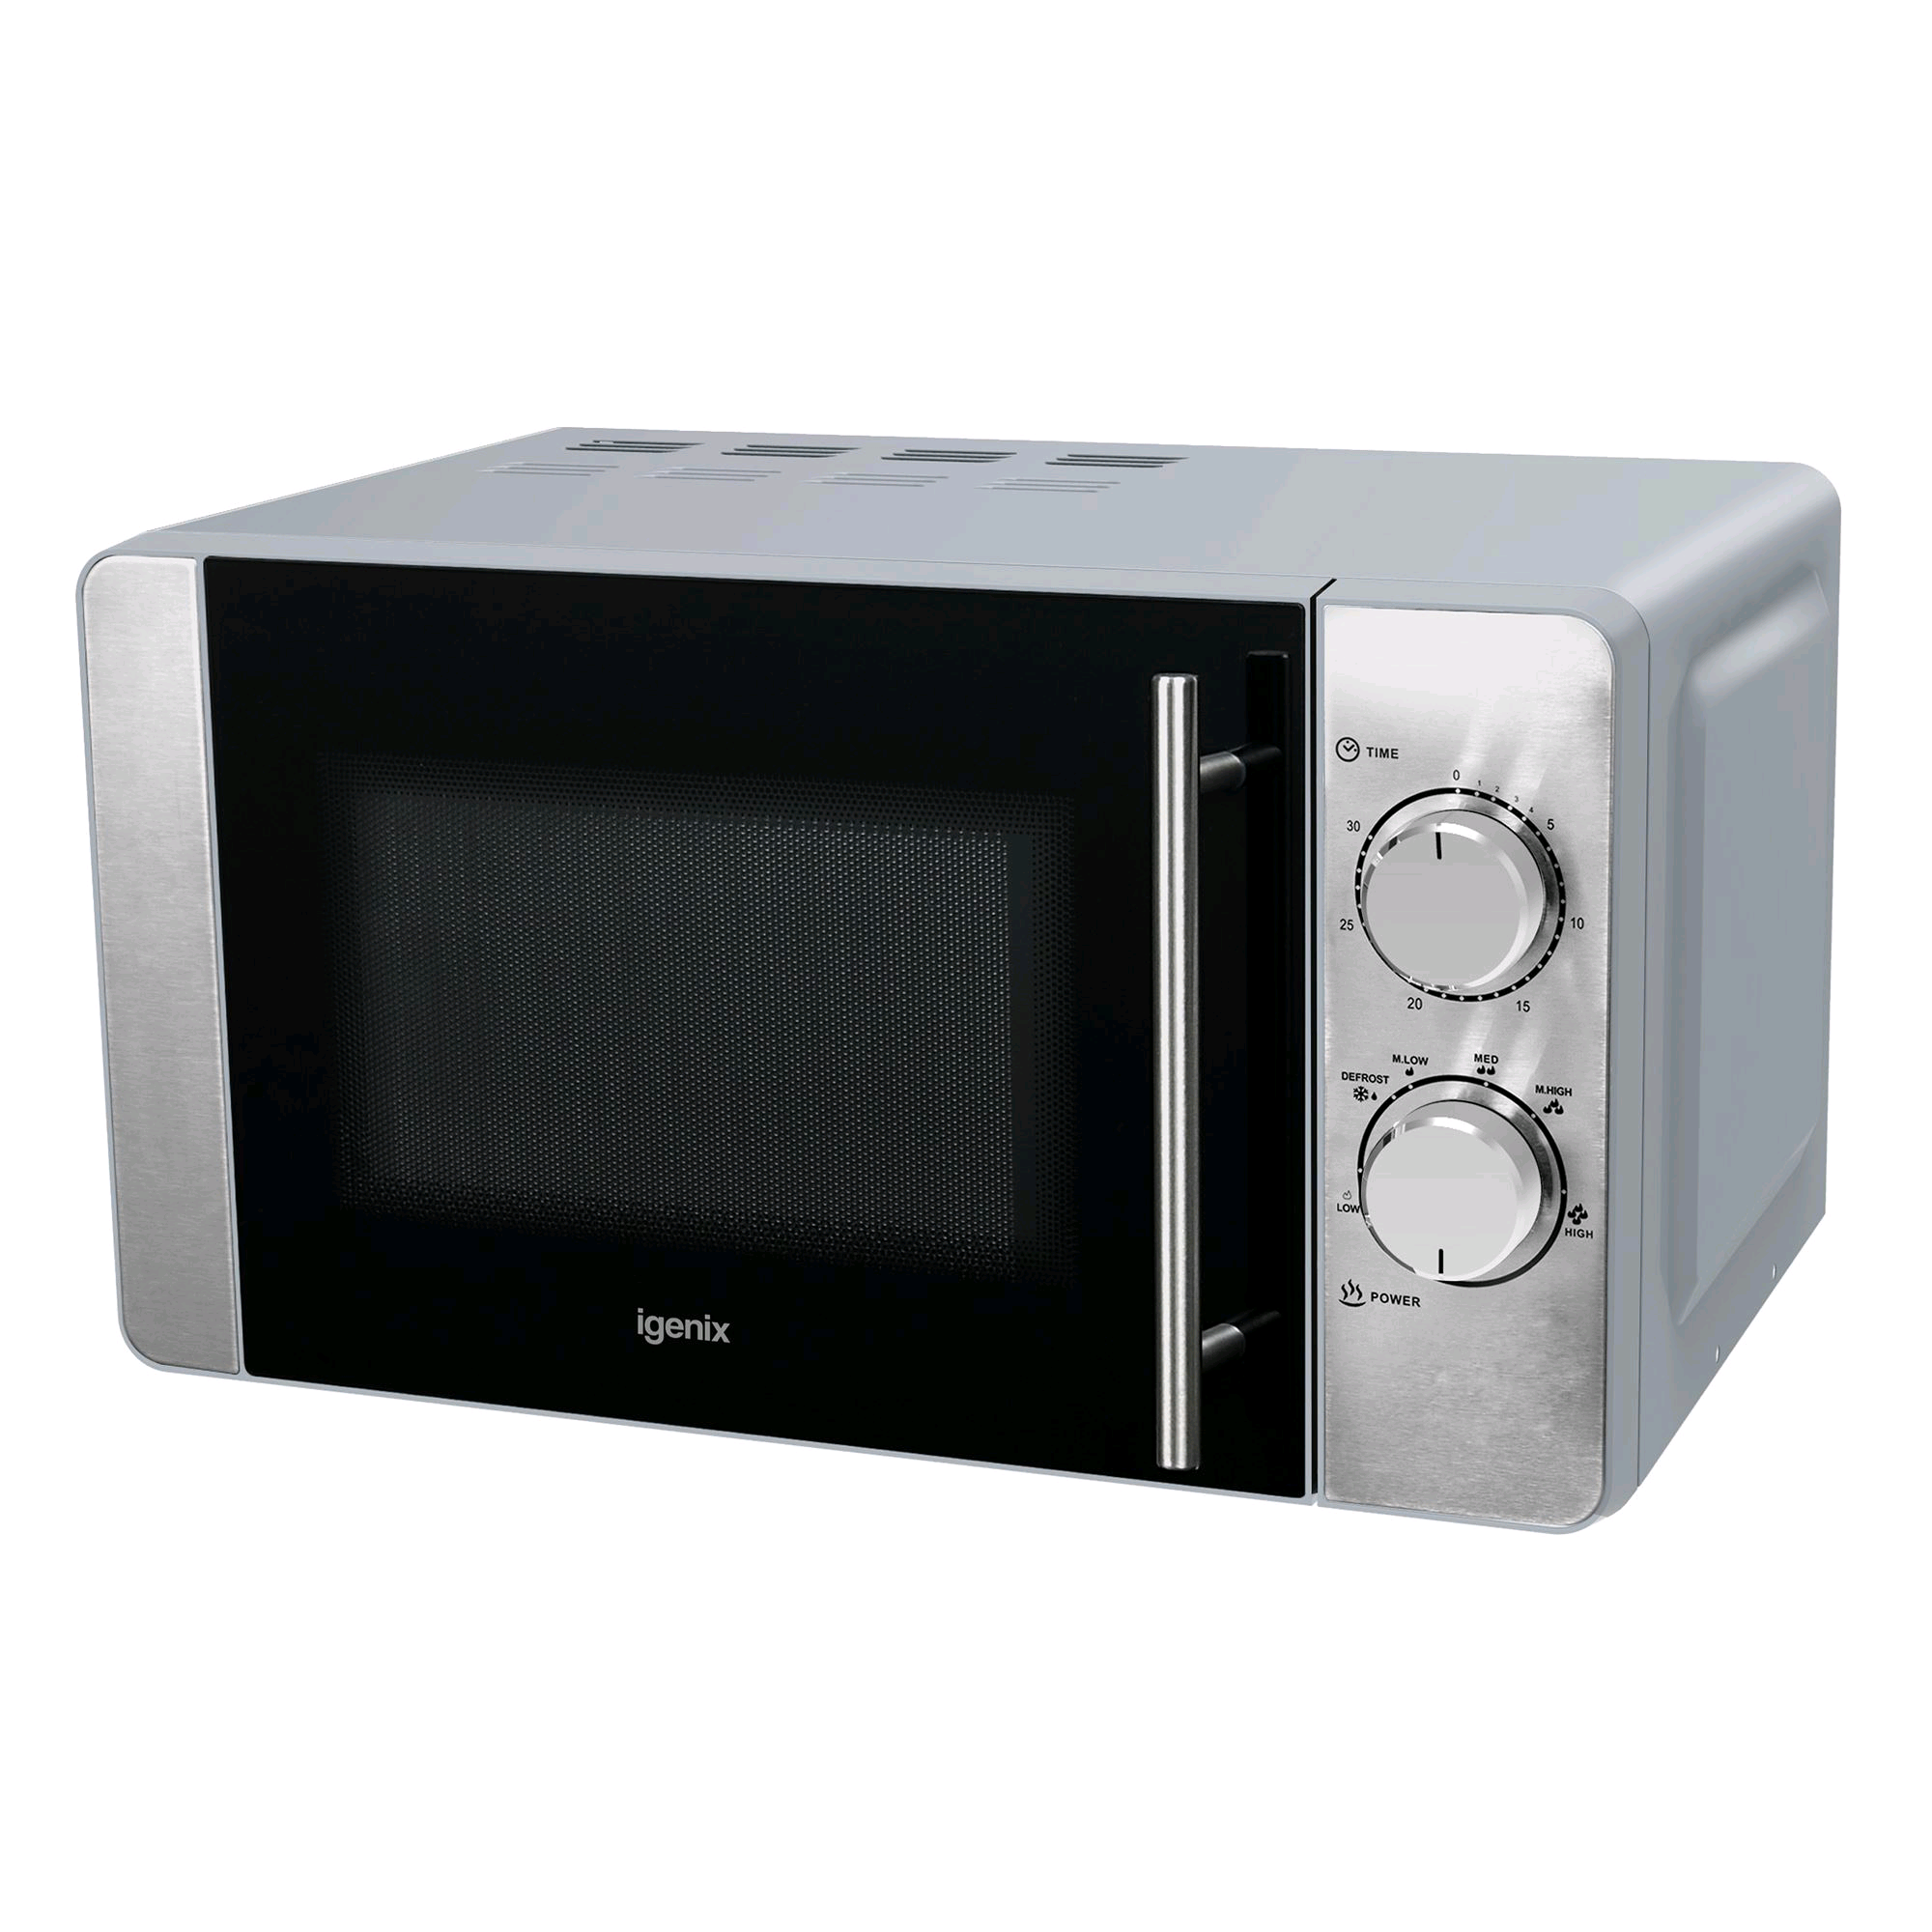 Igenix 20L Manual Microwave 800w Stainless Steel Exterior Painted interior